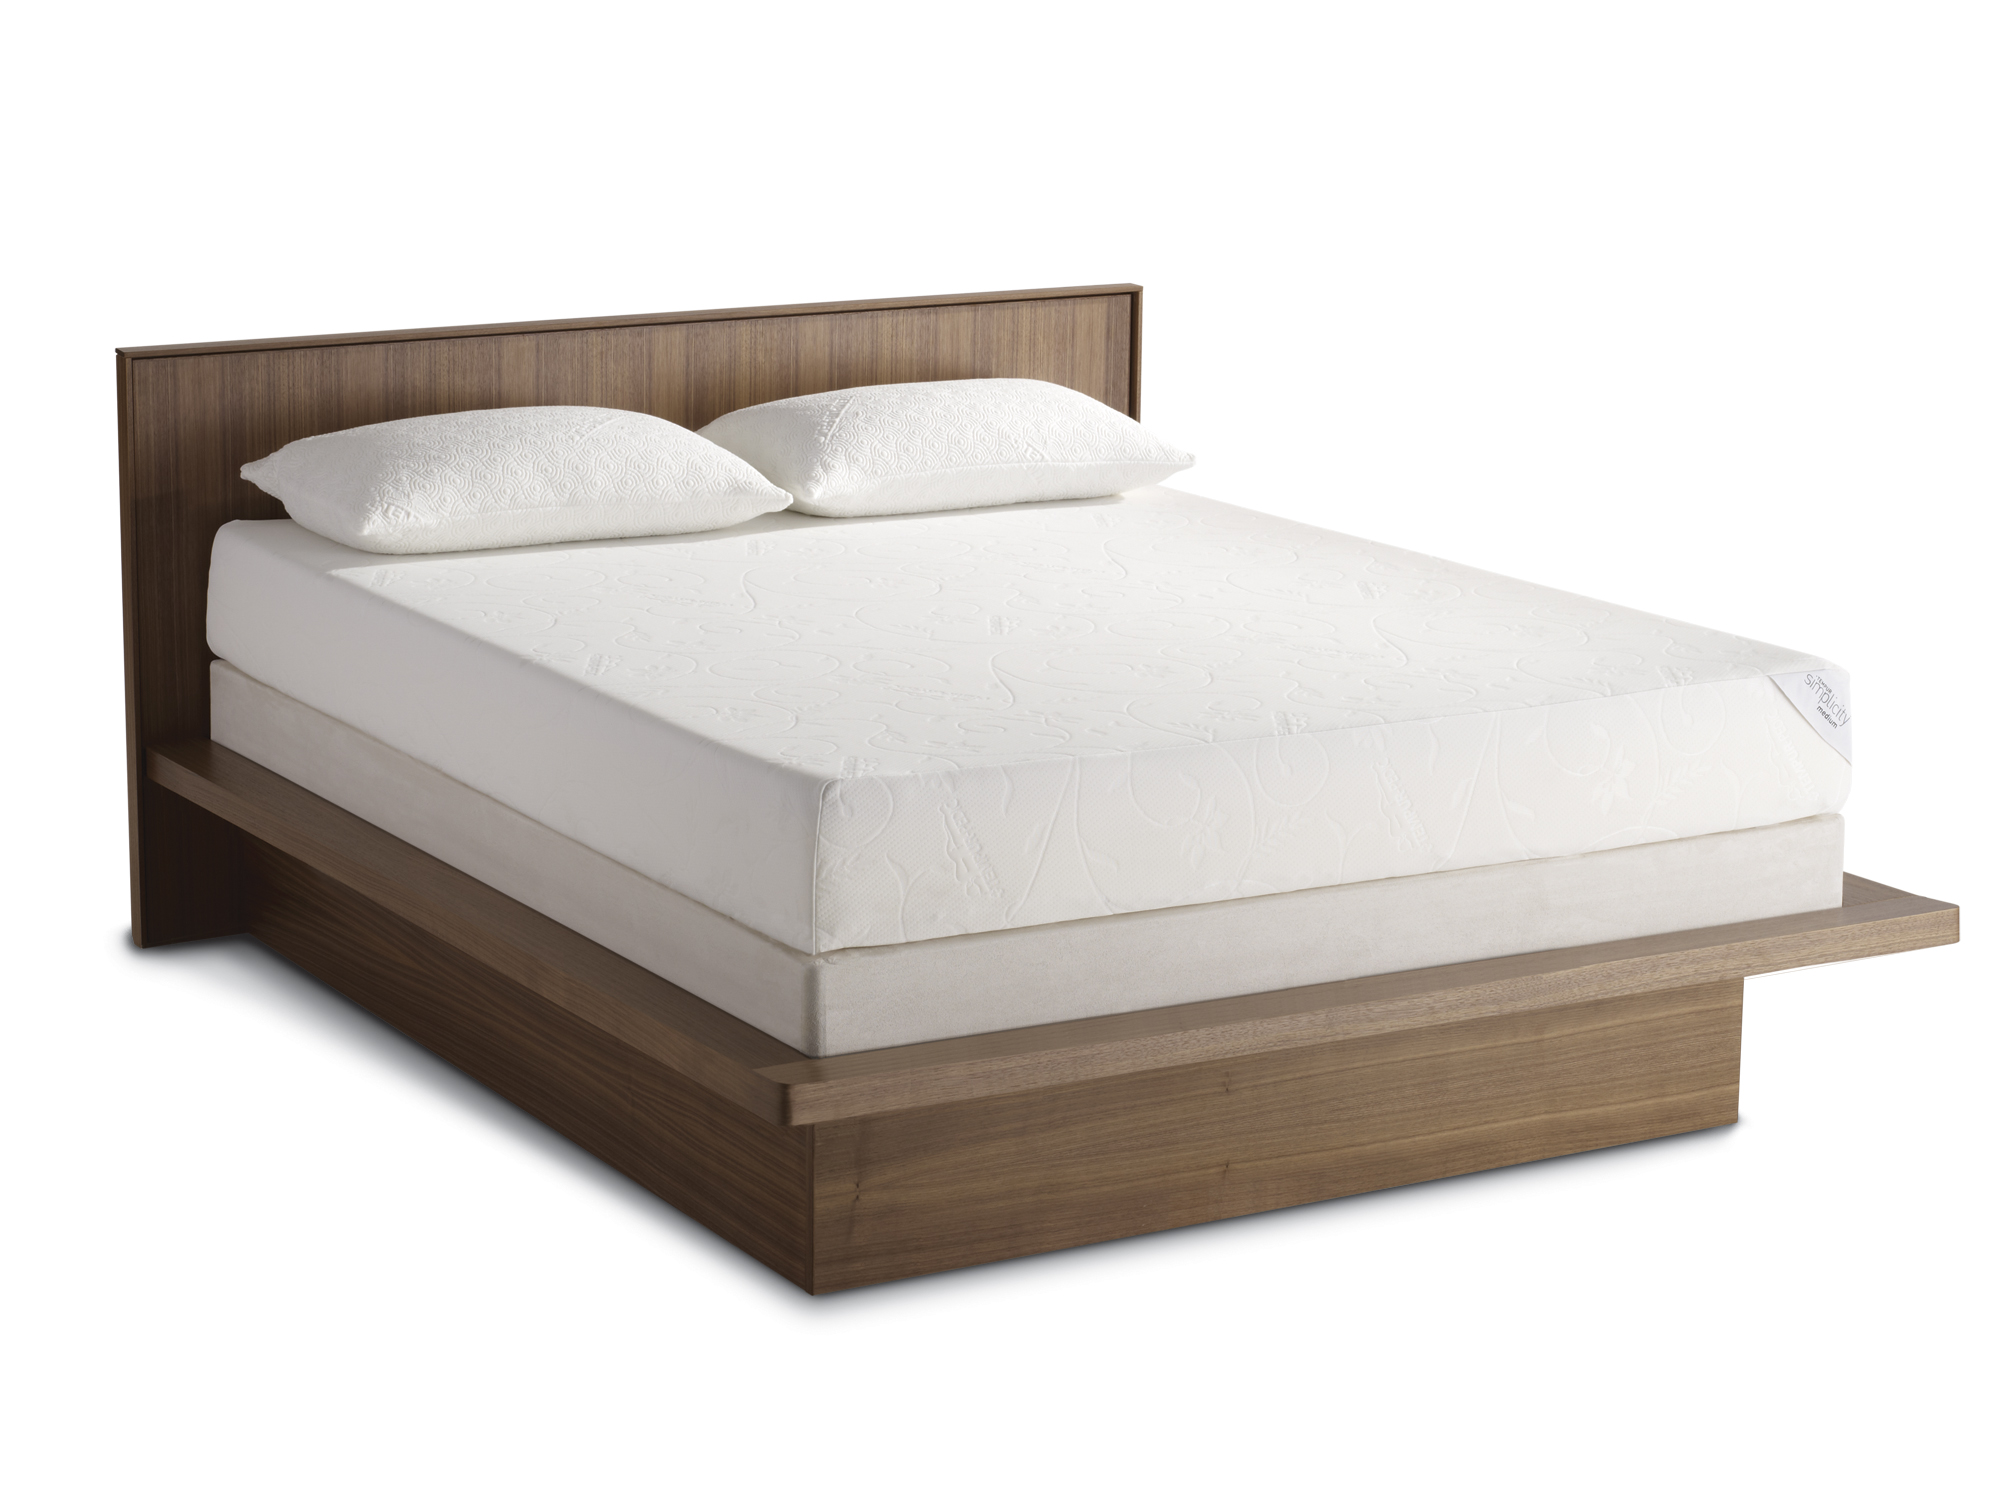 Serta Icomfort Reviews >> TEMPUR-Simplicity Medium Mattresses - Philadelphia & NJ